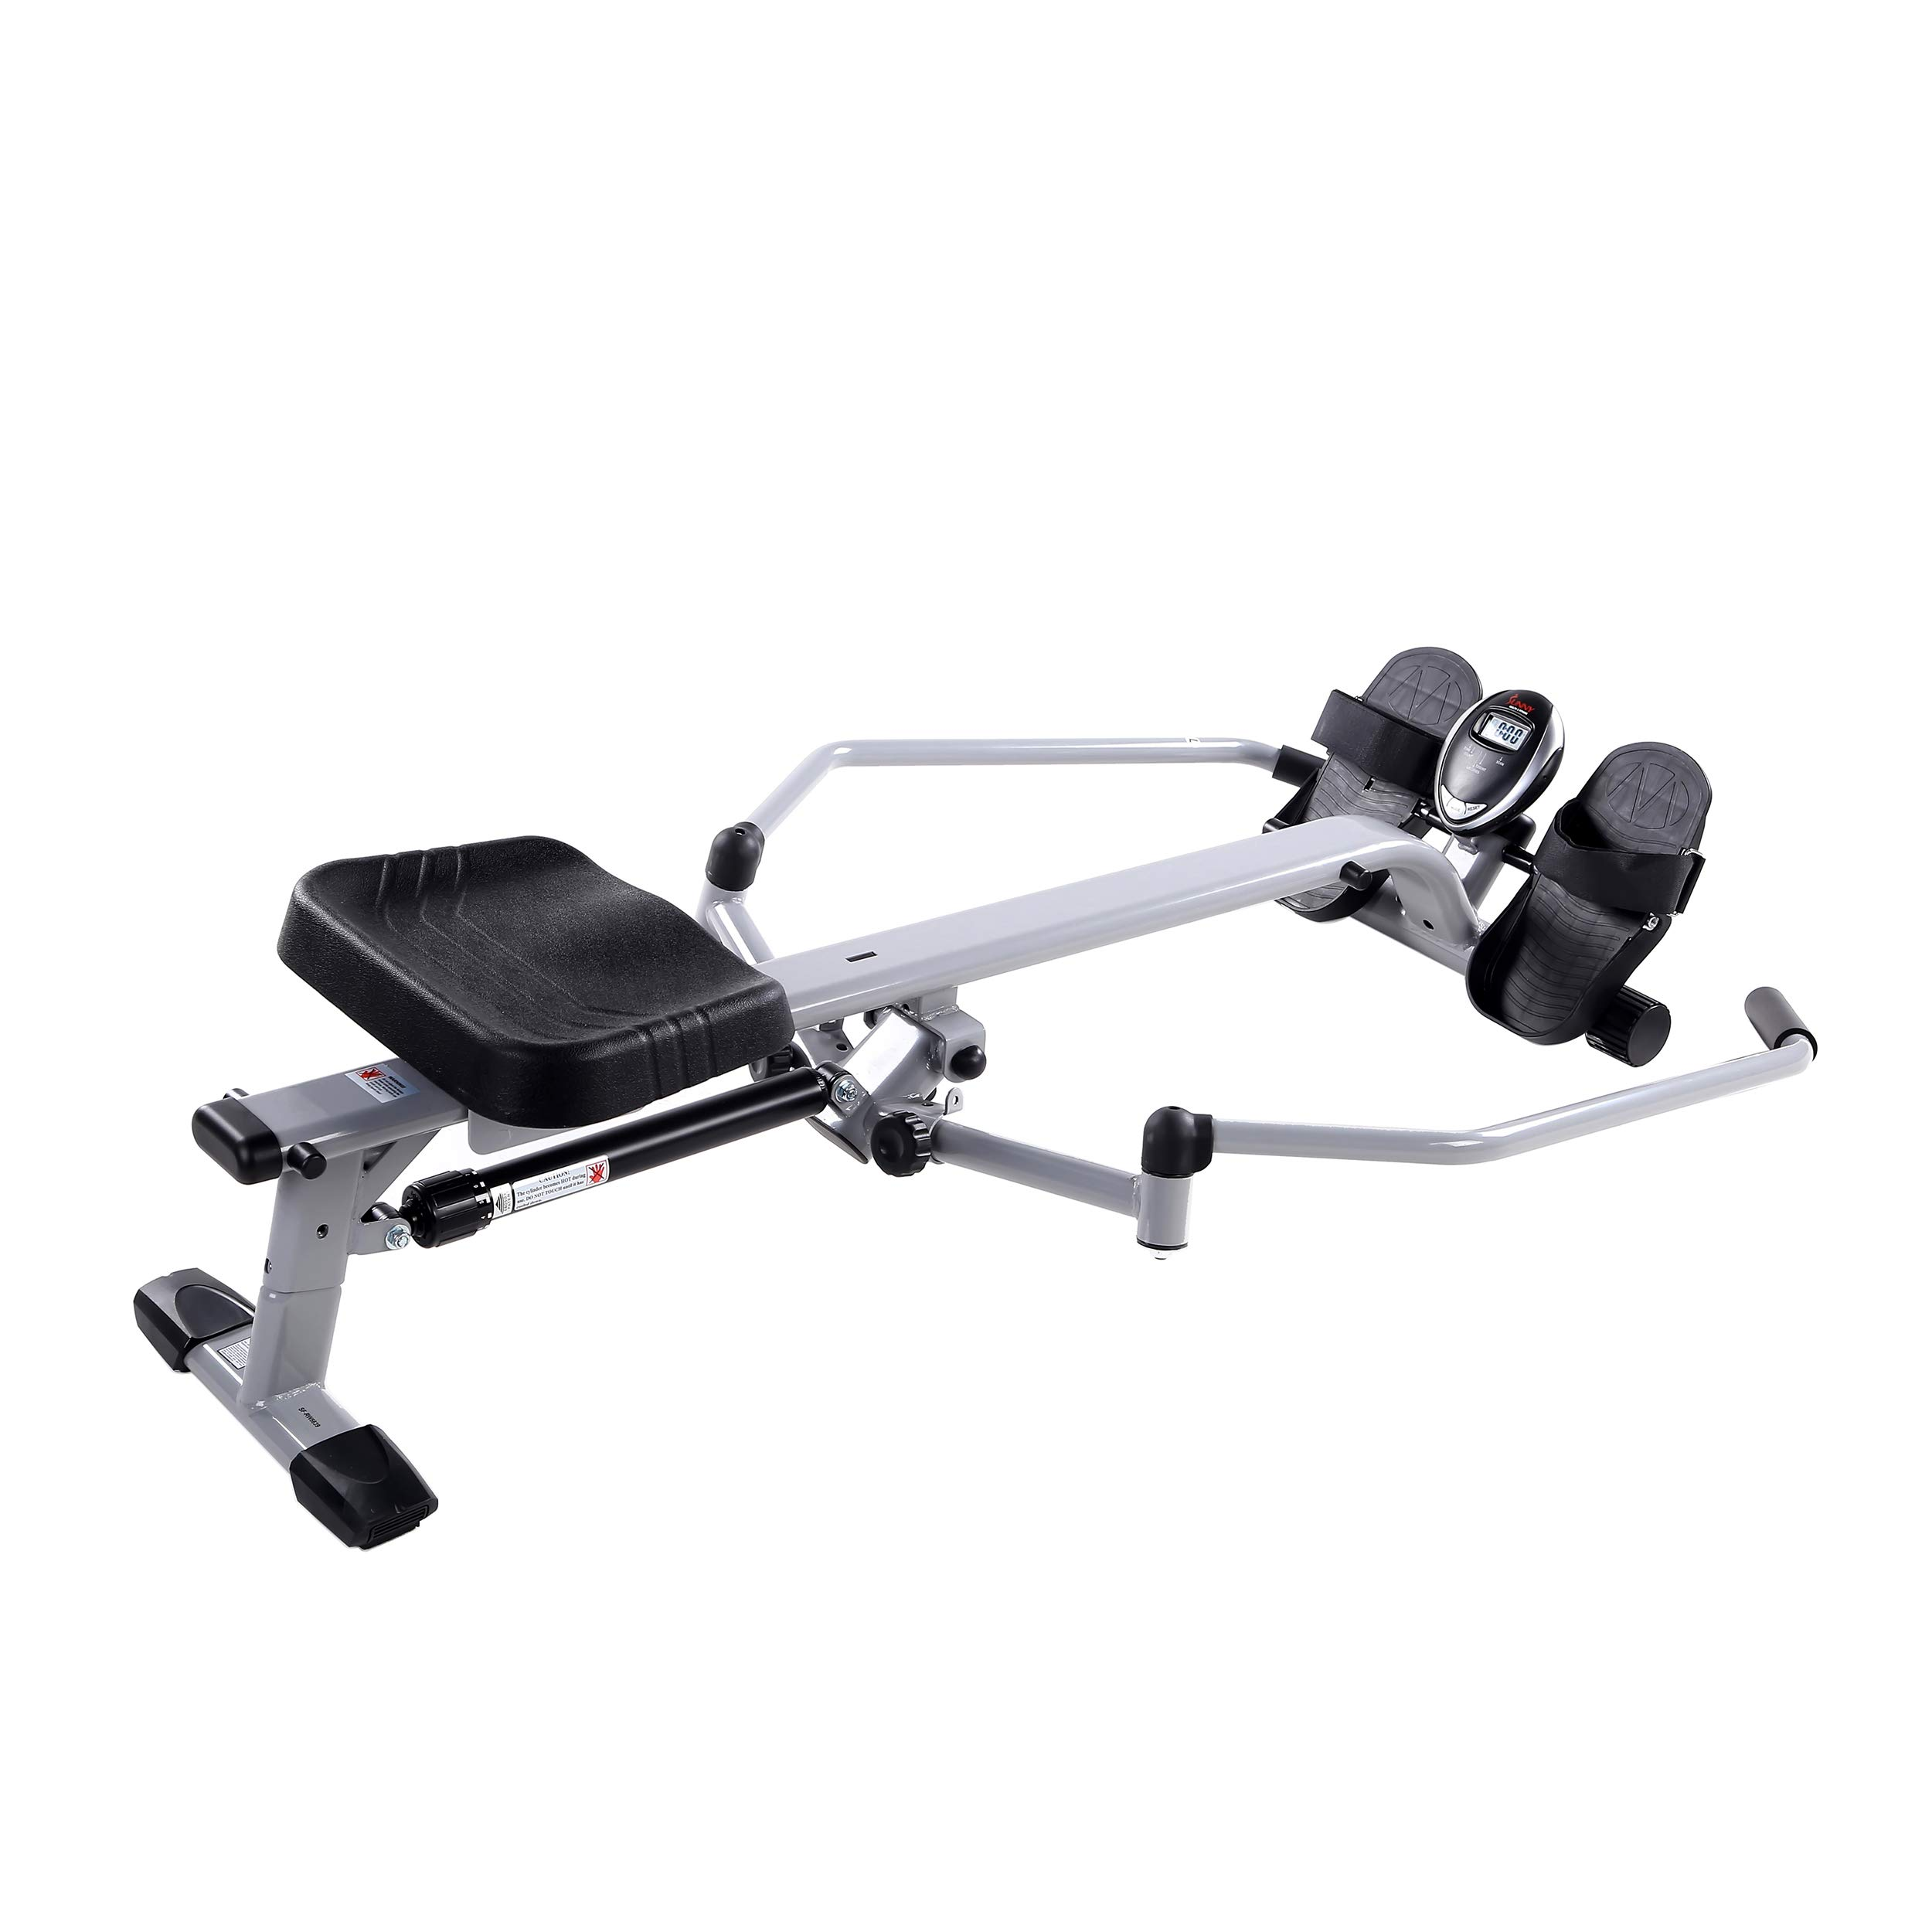 Sunny Health & Fitness SF-RW5639 Full Motion Rowing Machine Rower w/ 350 lb Weight Capacity and LCD Monitor by Sunny Health & Fitness (Image #3)